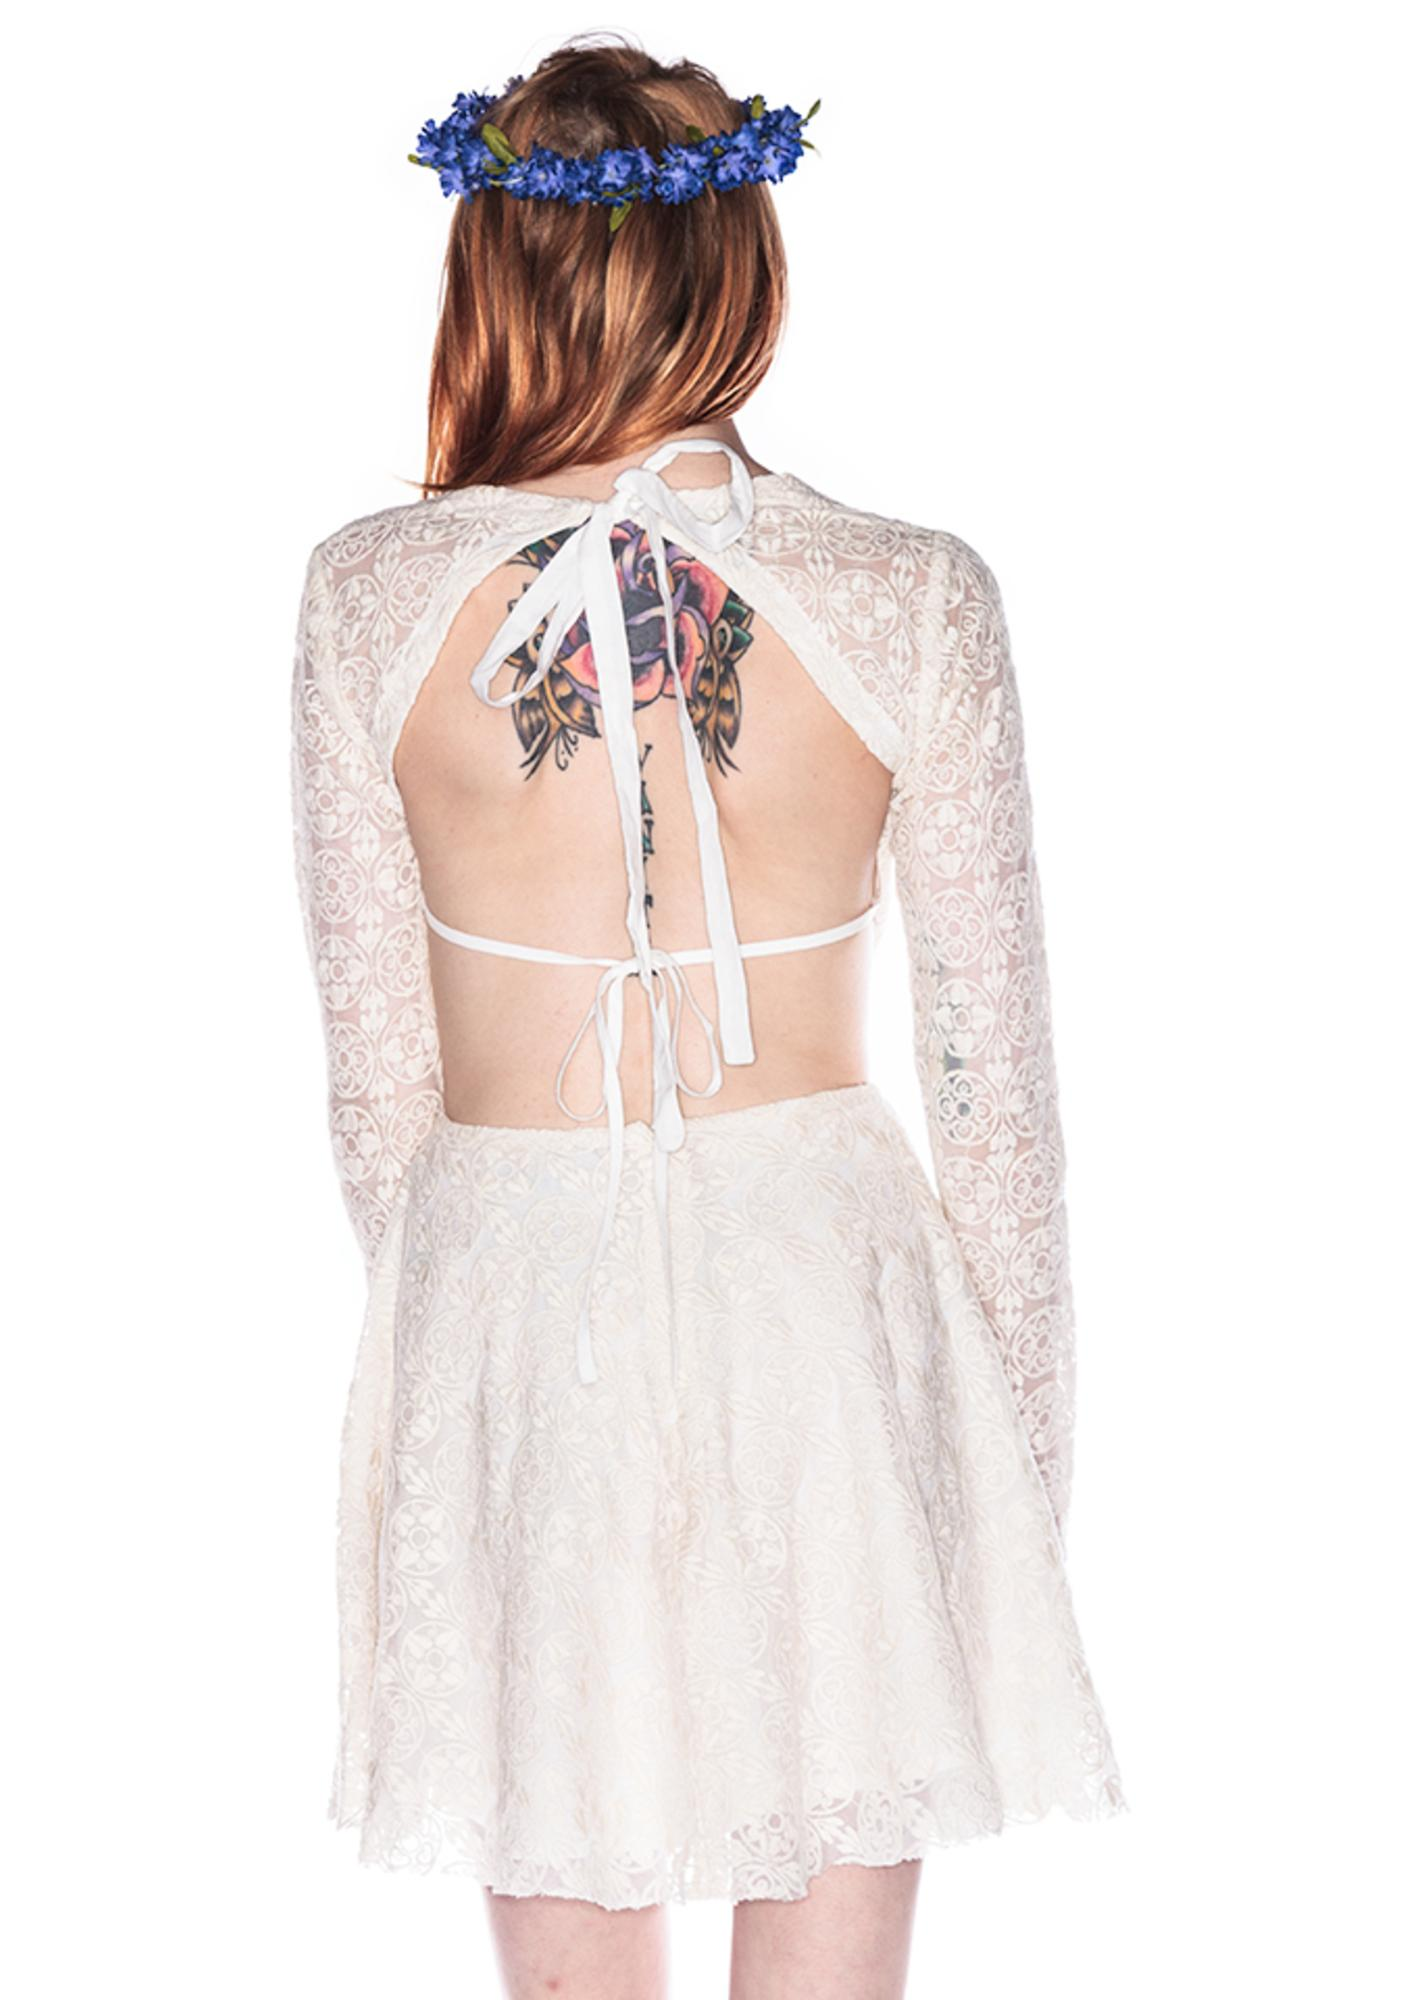 One Teaspoon Twilight Garden Lace Cut Away Dress